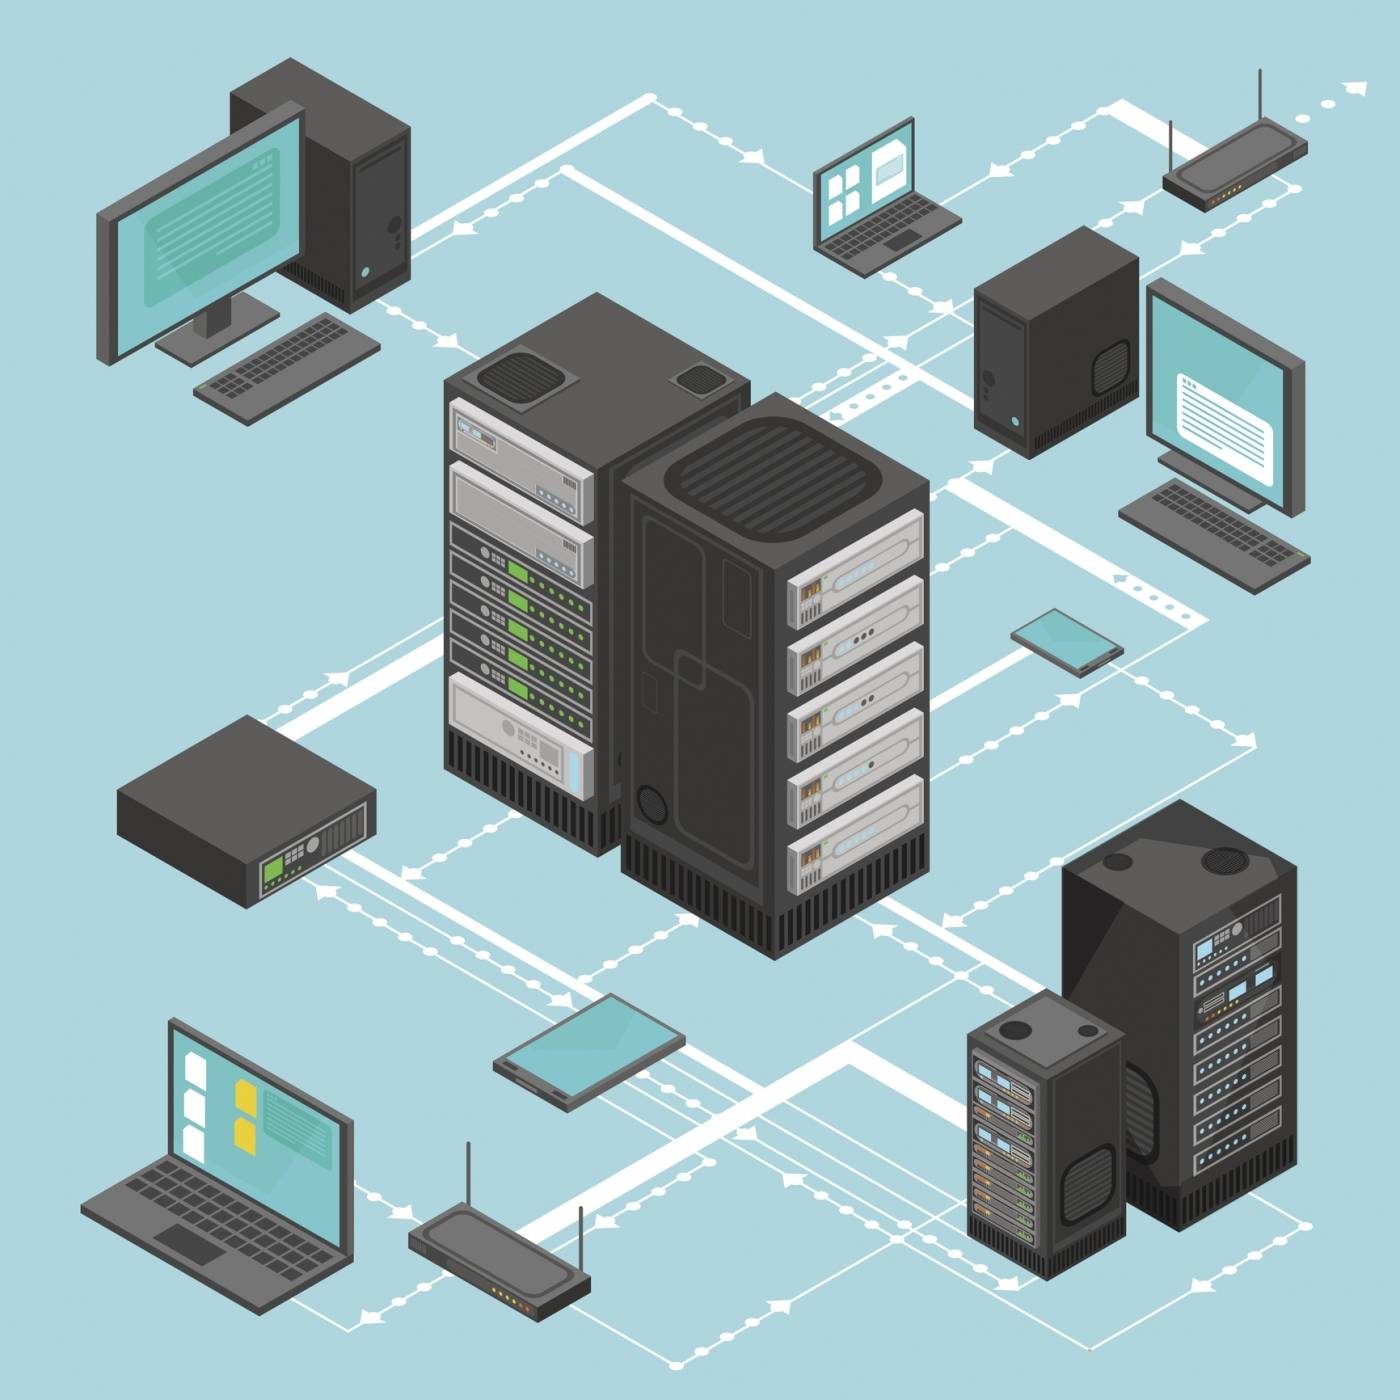 As Virtline we offer network implementation for companies